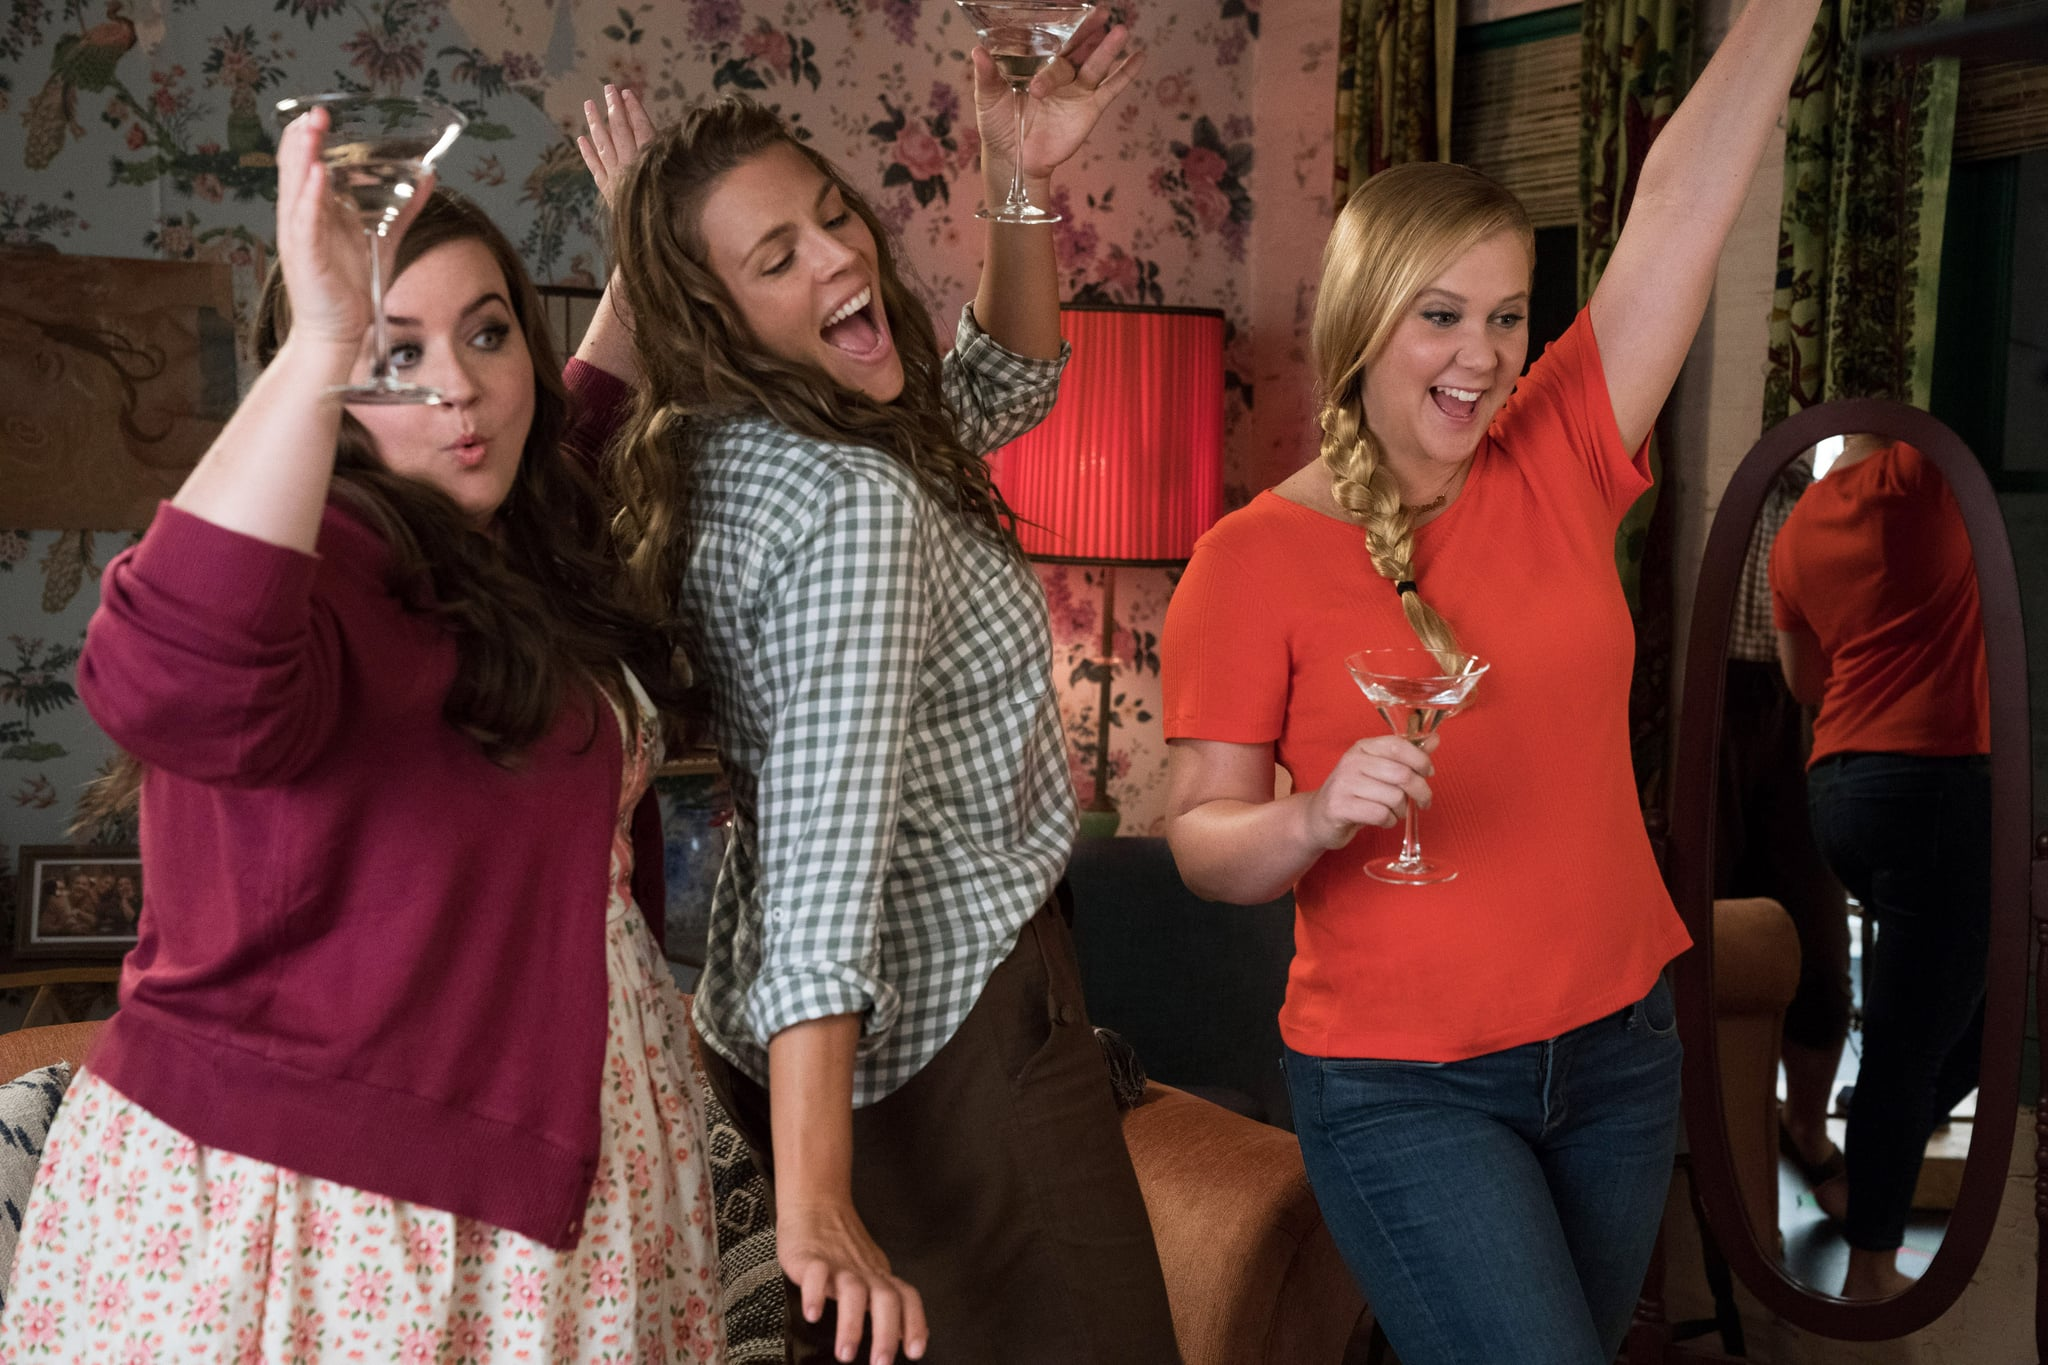 I FEEL PRETTY, from left: Aidy Bryant, Busy Philipps, Amy Schumer, 2018. ph: Mark Schafer/  STX Entertainment /Courtesy Everett Colletion